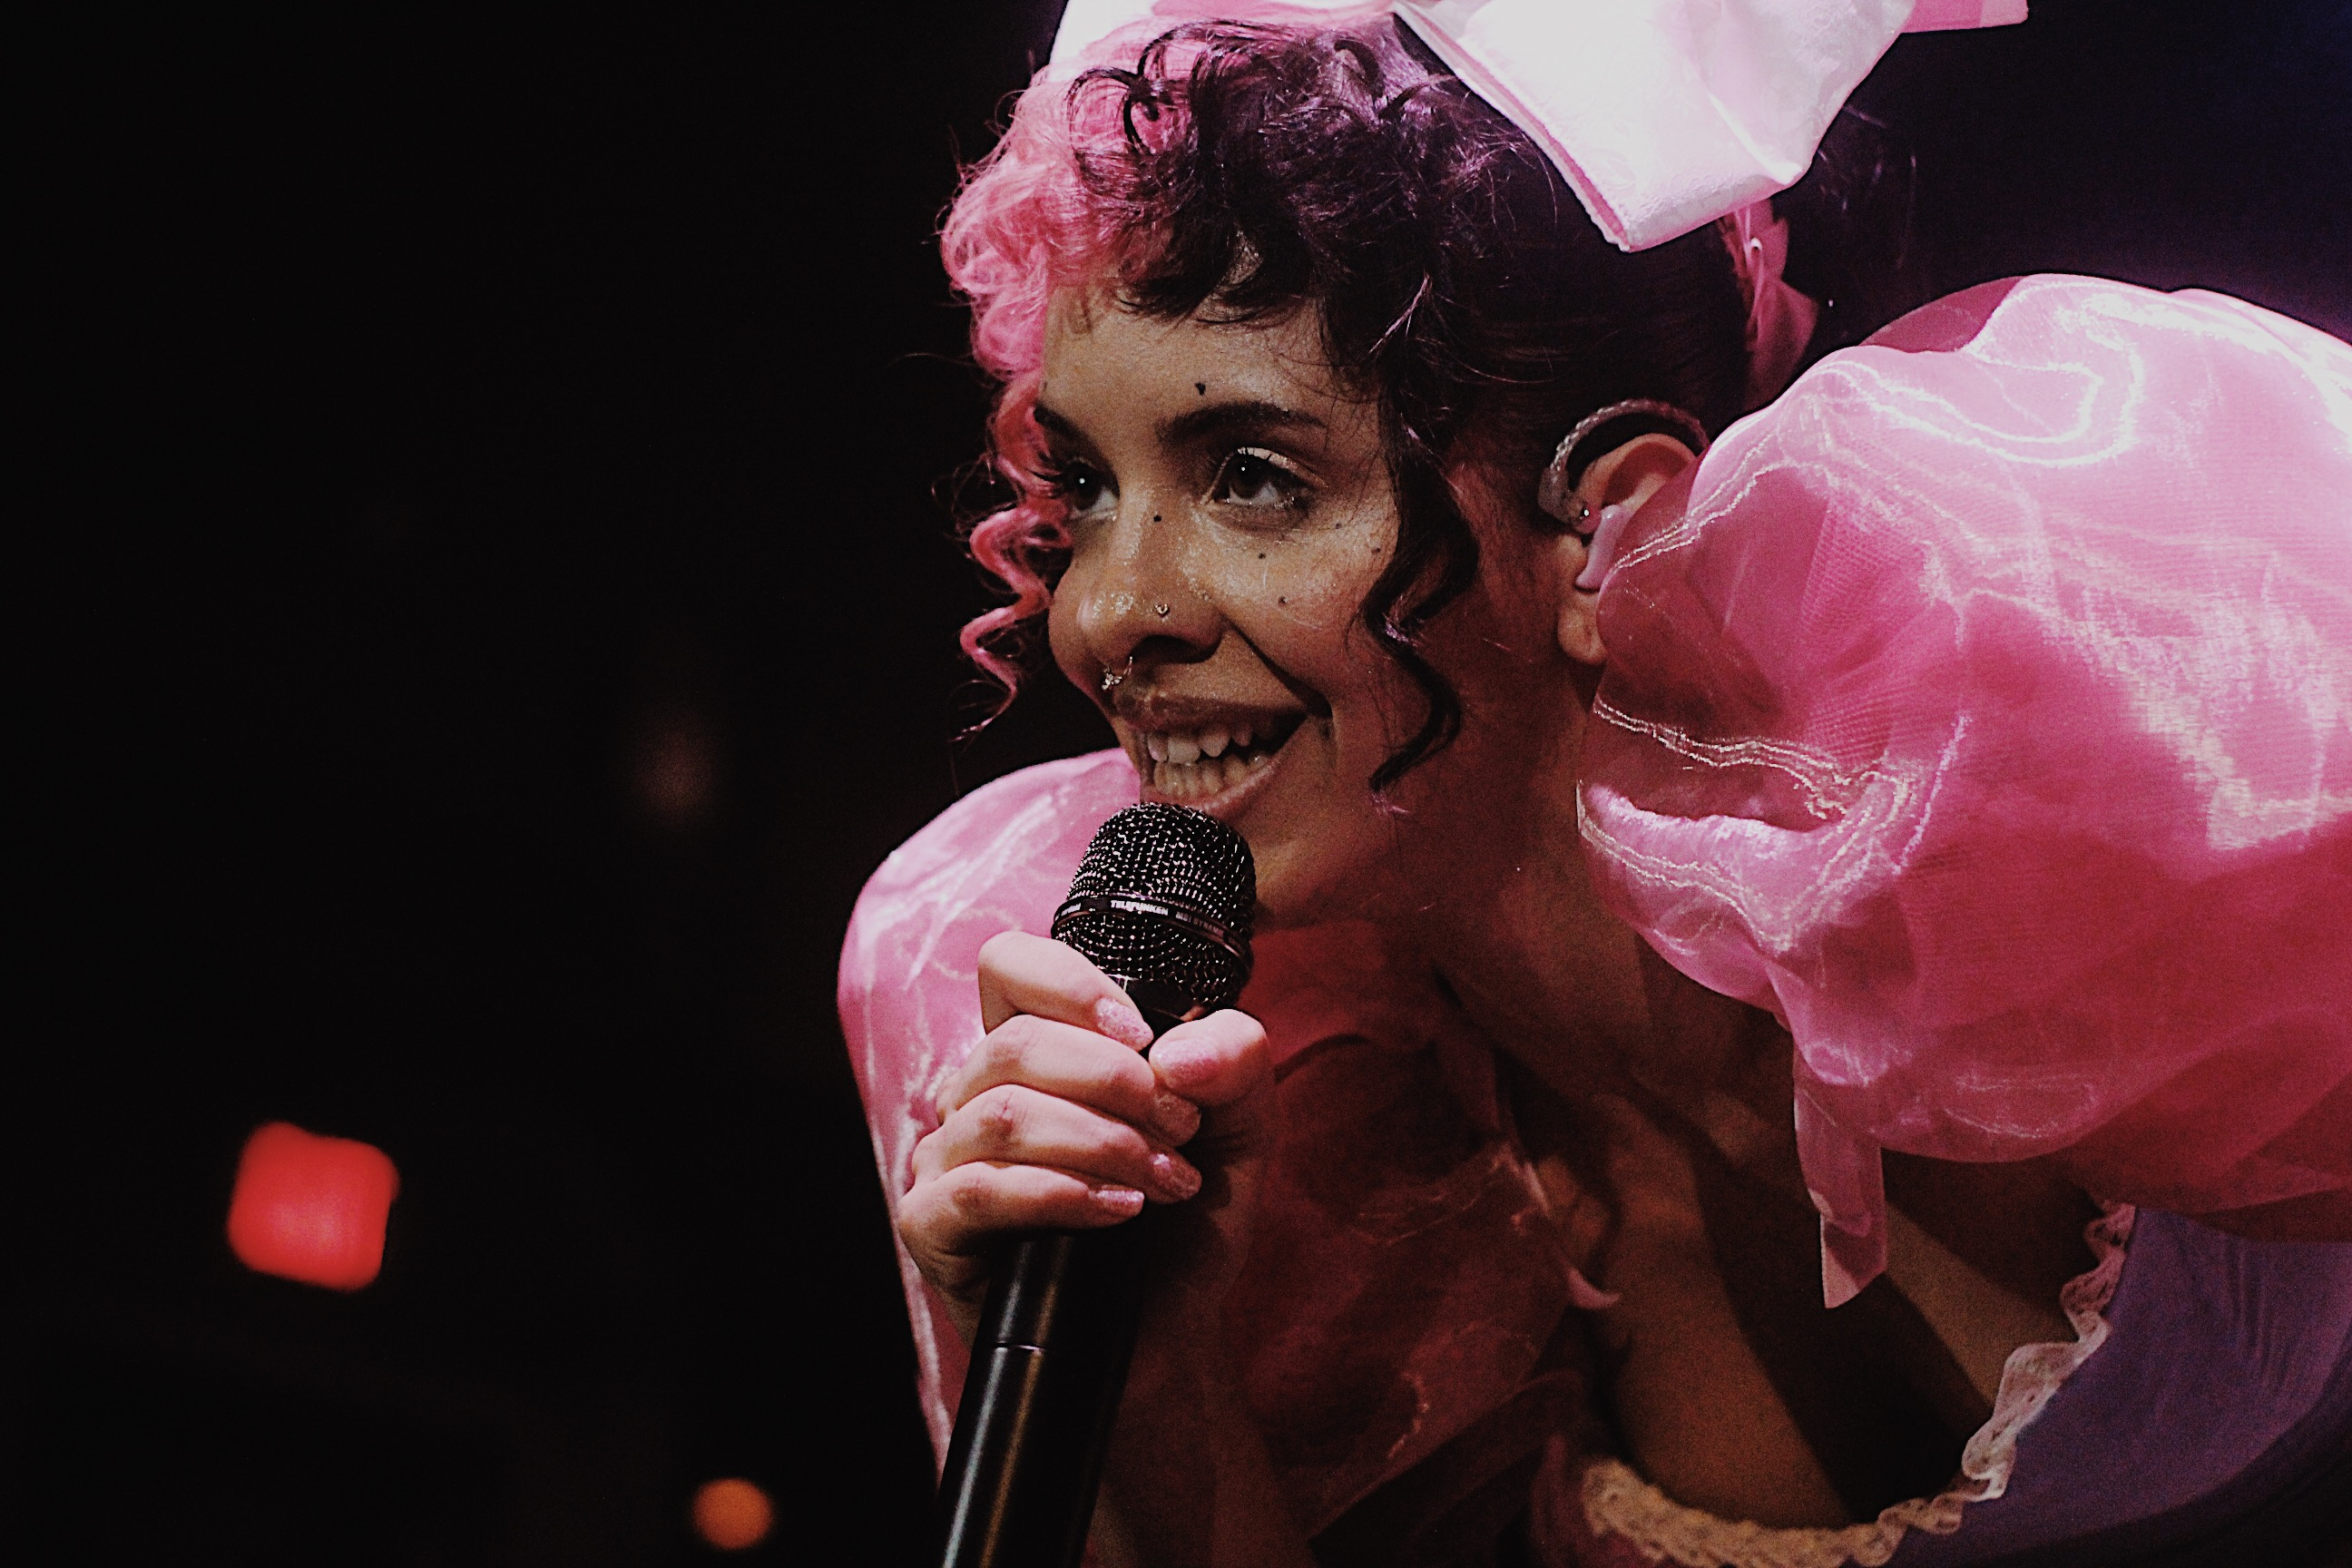 The cry baby effect: Melanie Martinez concert review